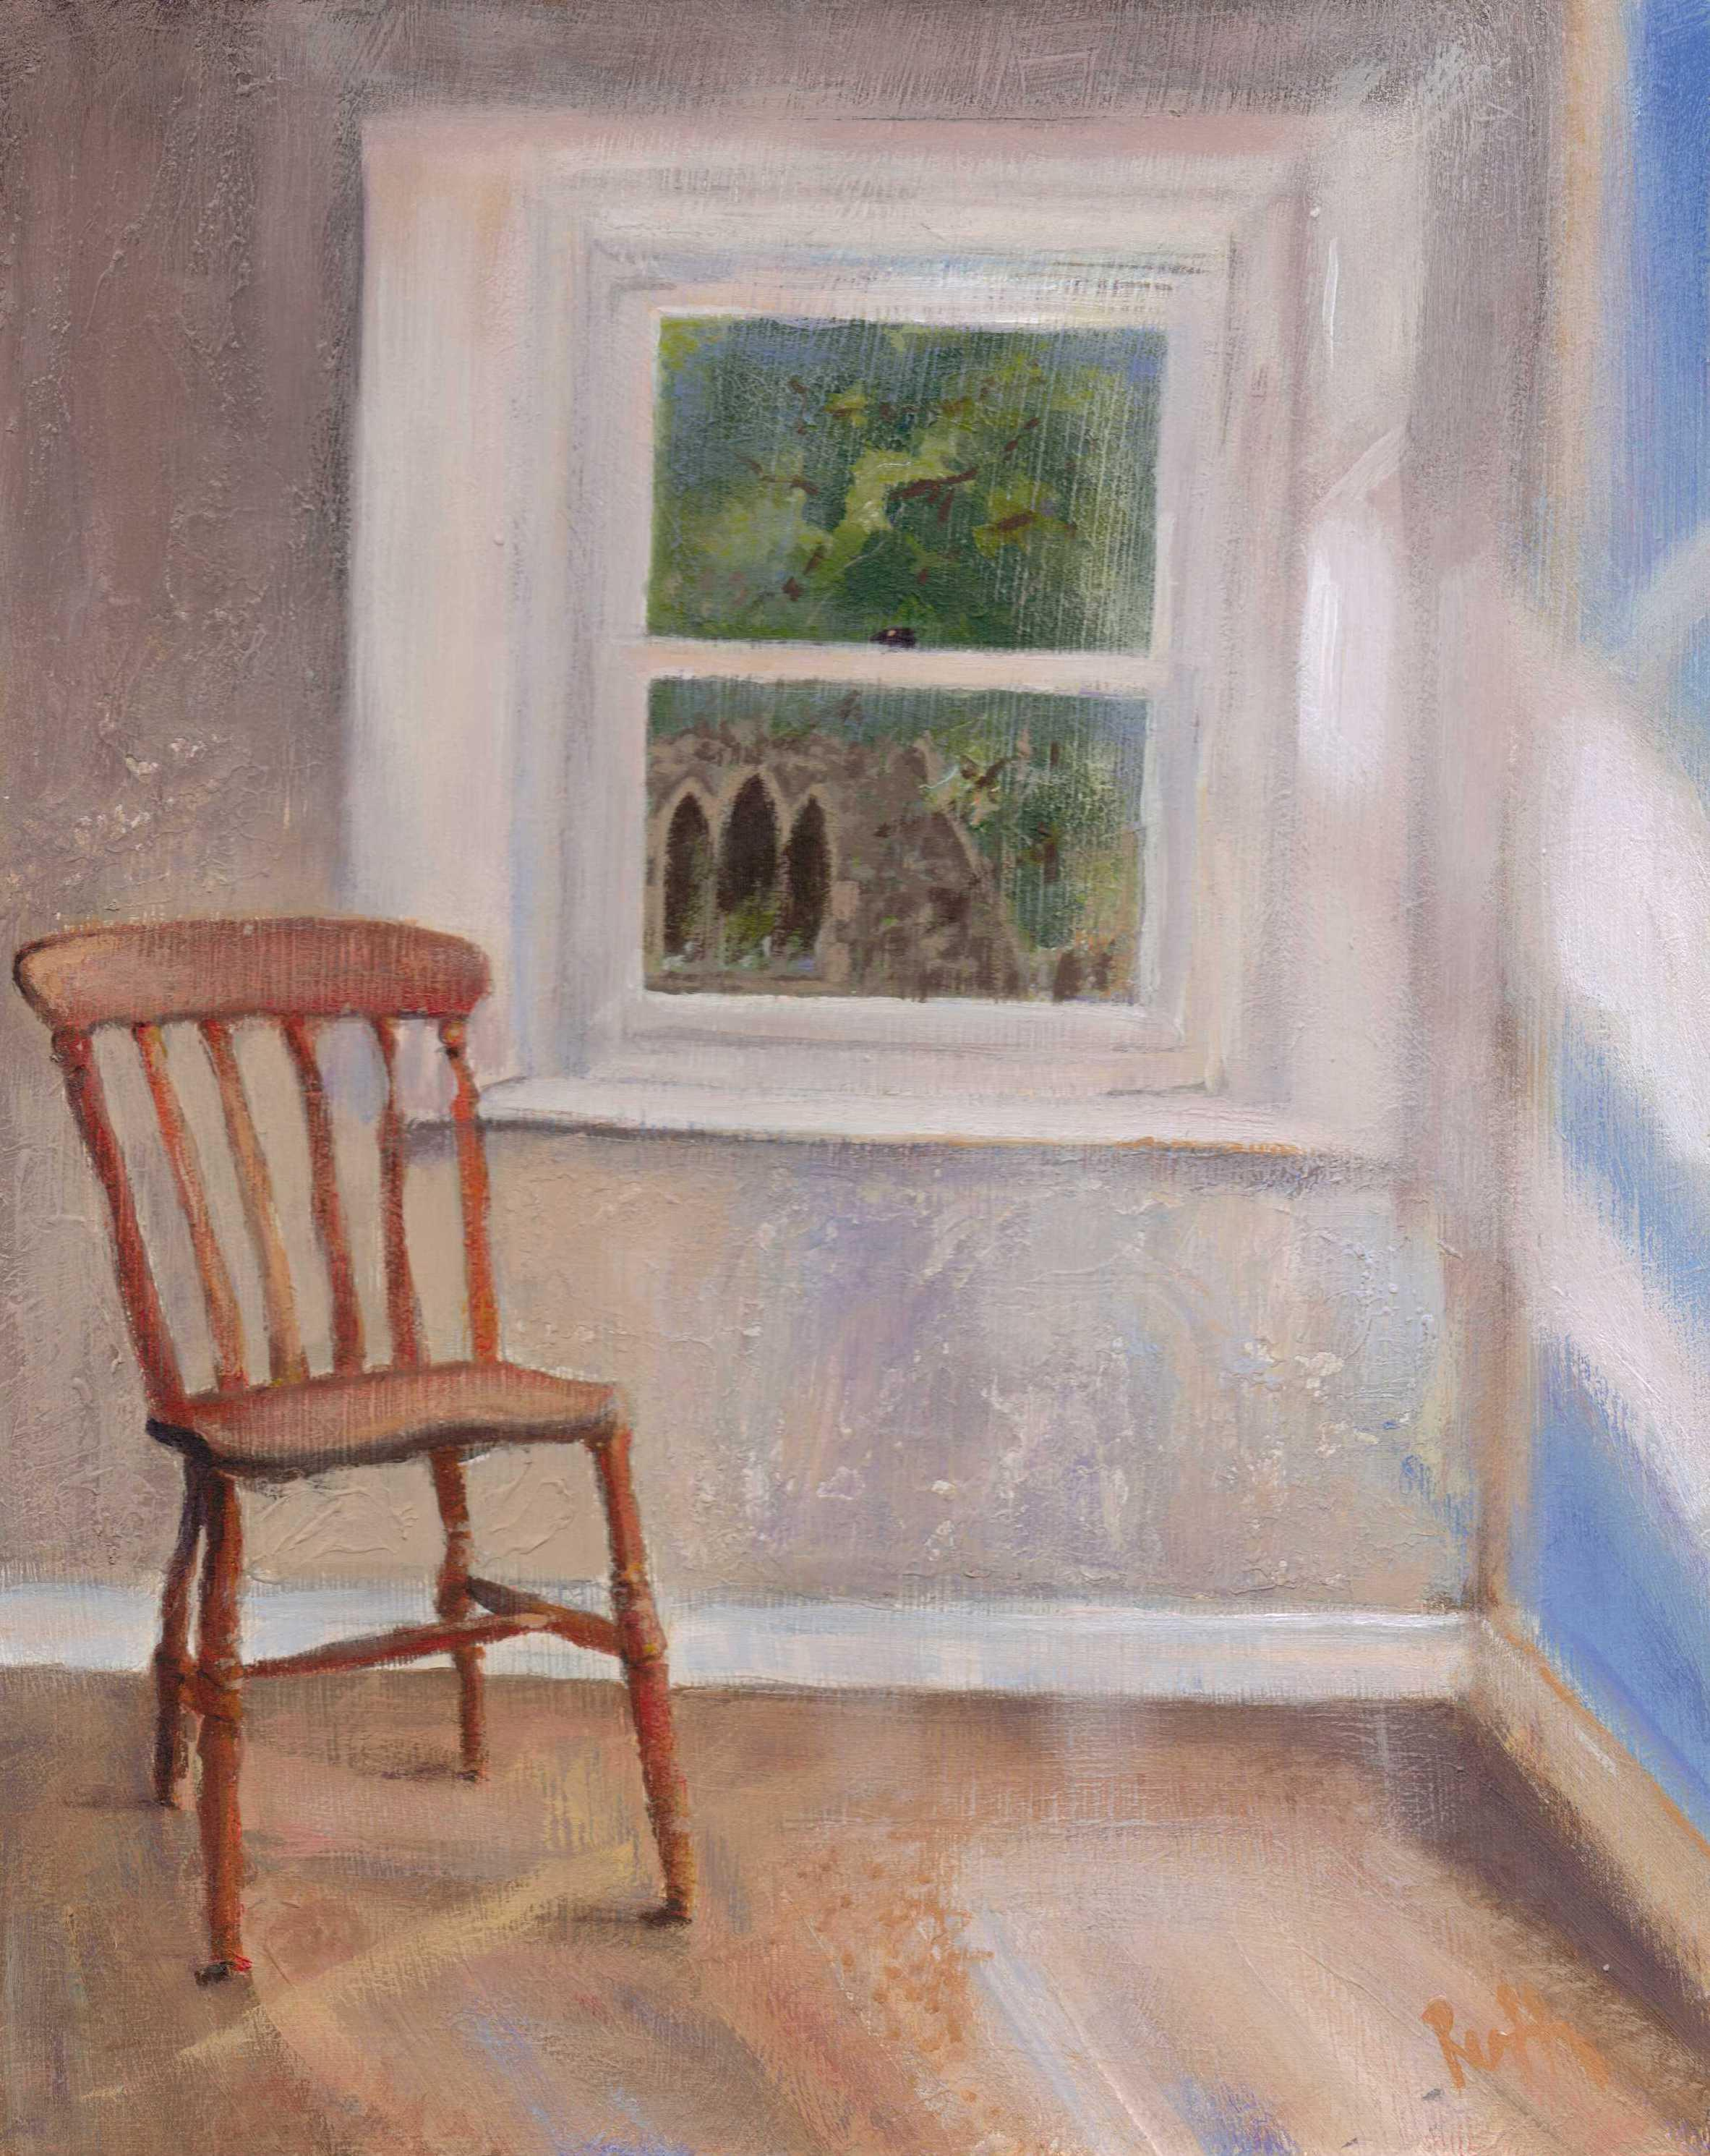 Ruth Gray Chair in window